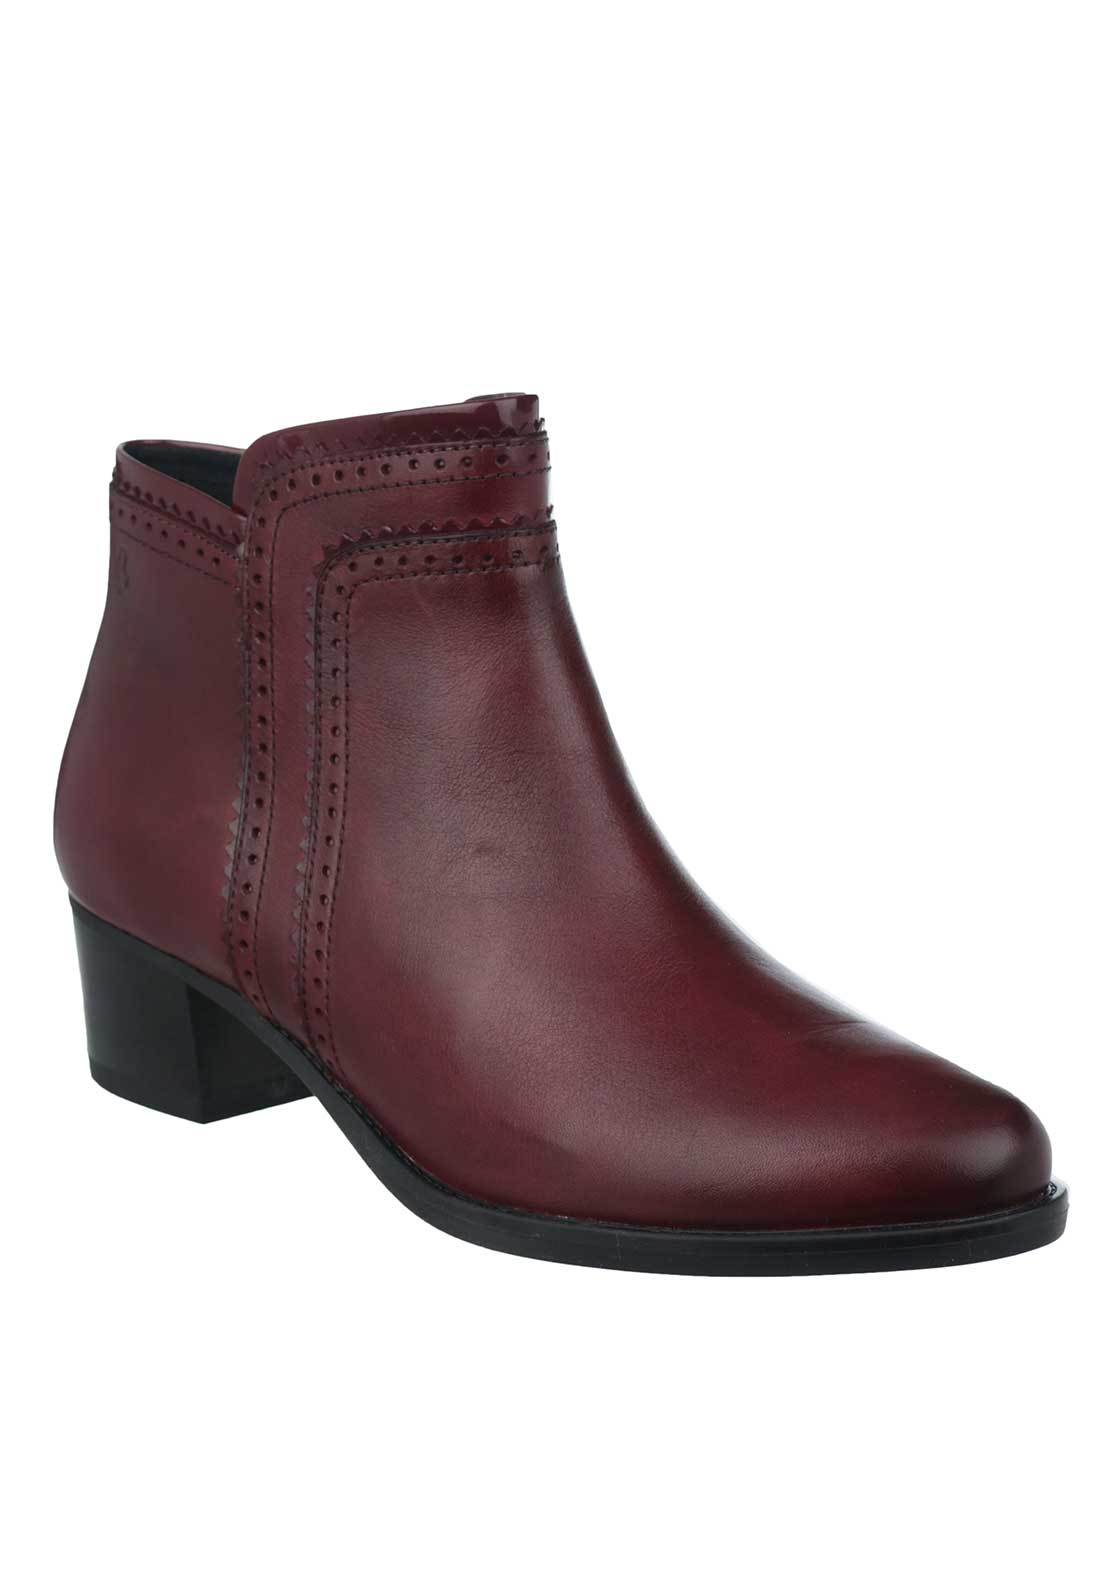 caprice brogue stitched leather heeled ankle boots bordeaux mcelhinneys. Black Bedroom Furniture Sets. Home Design Ideas